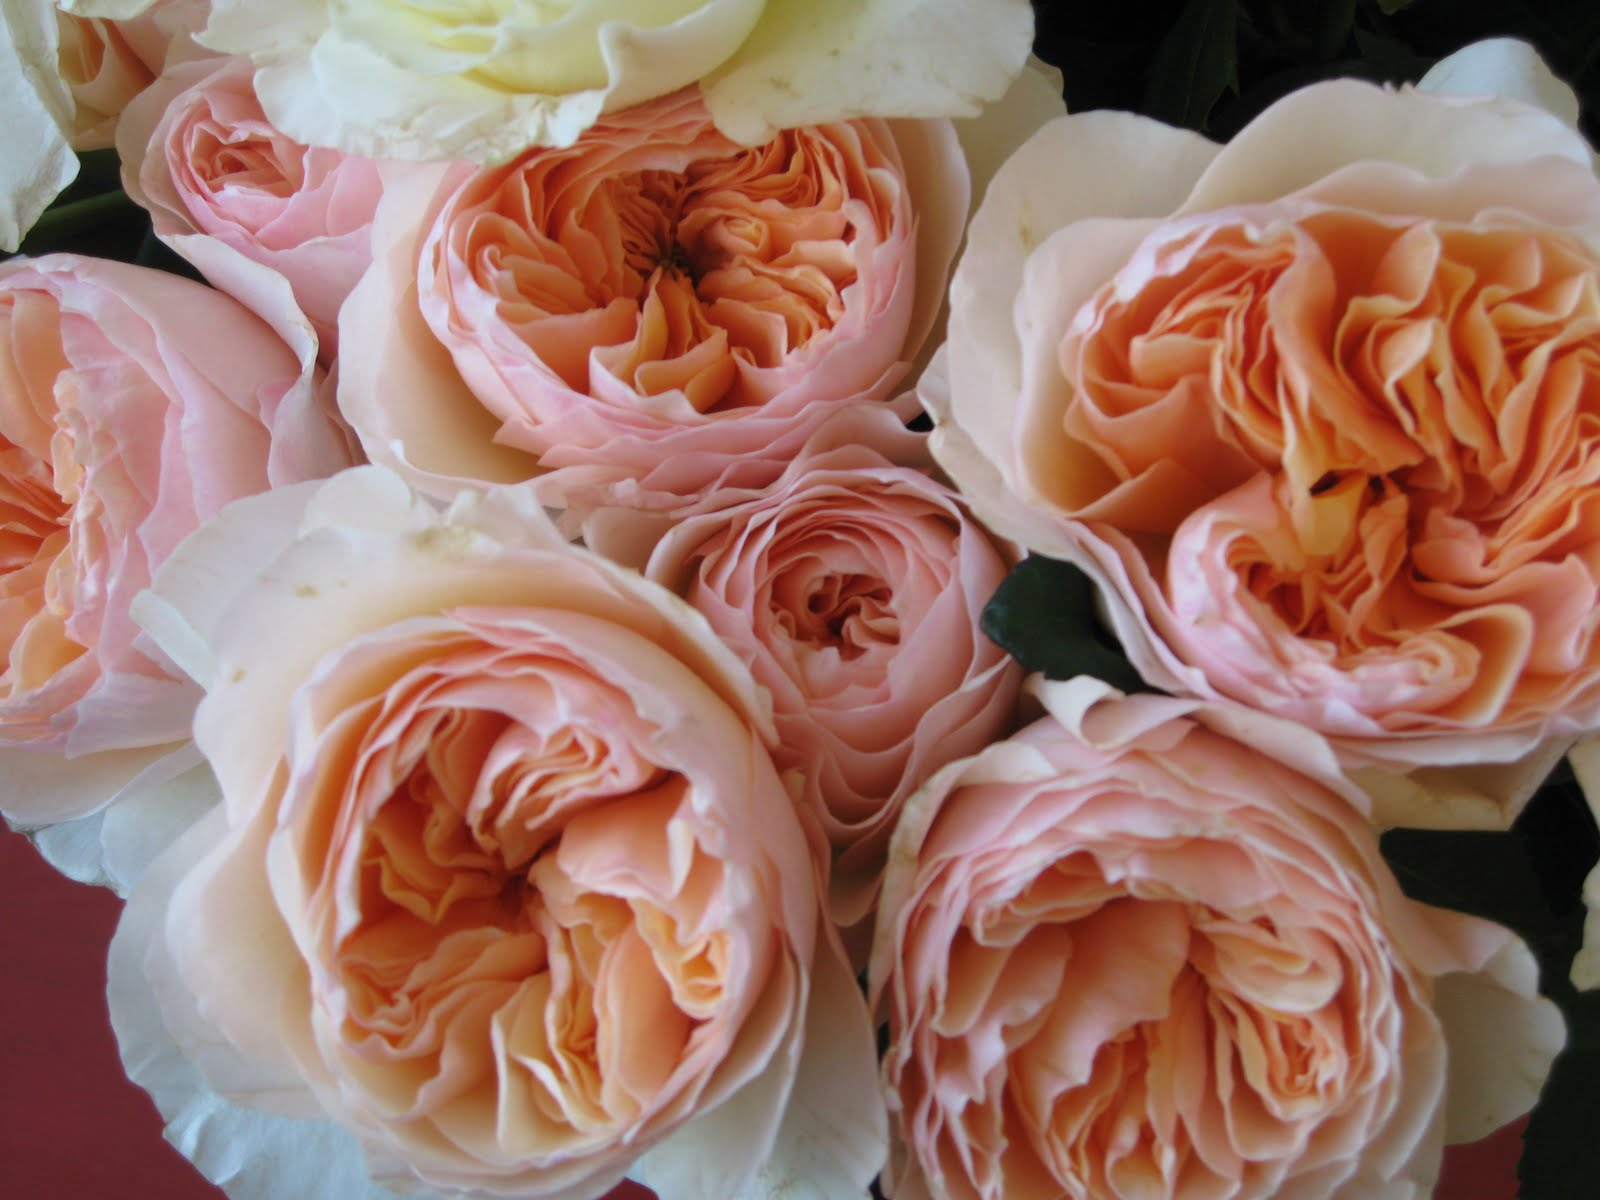 Down to Earth Flowers Gifts Garden Roses